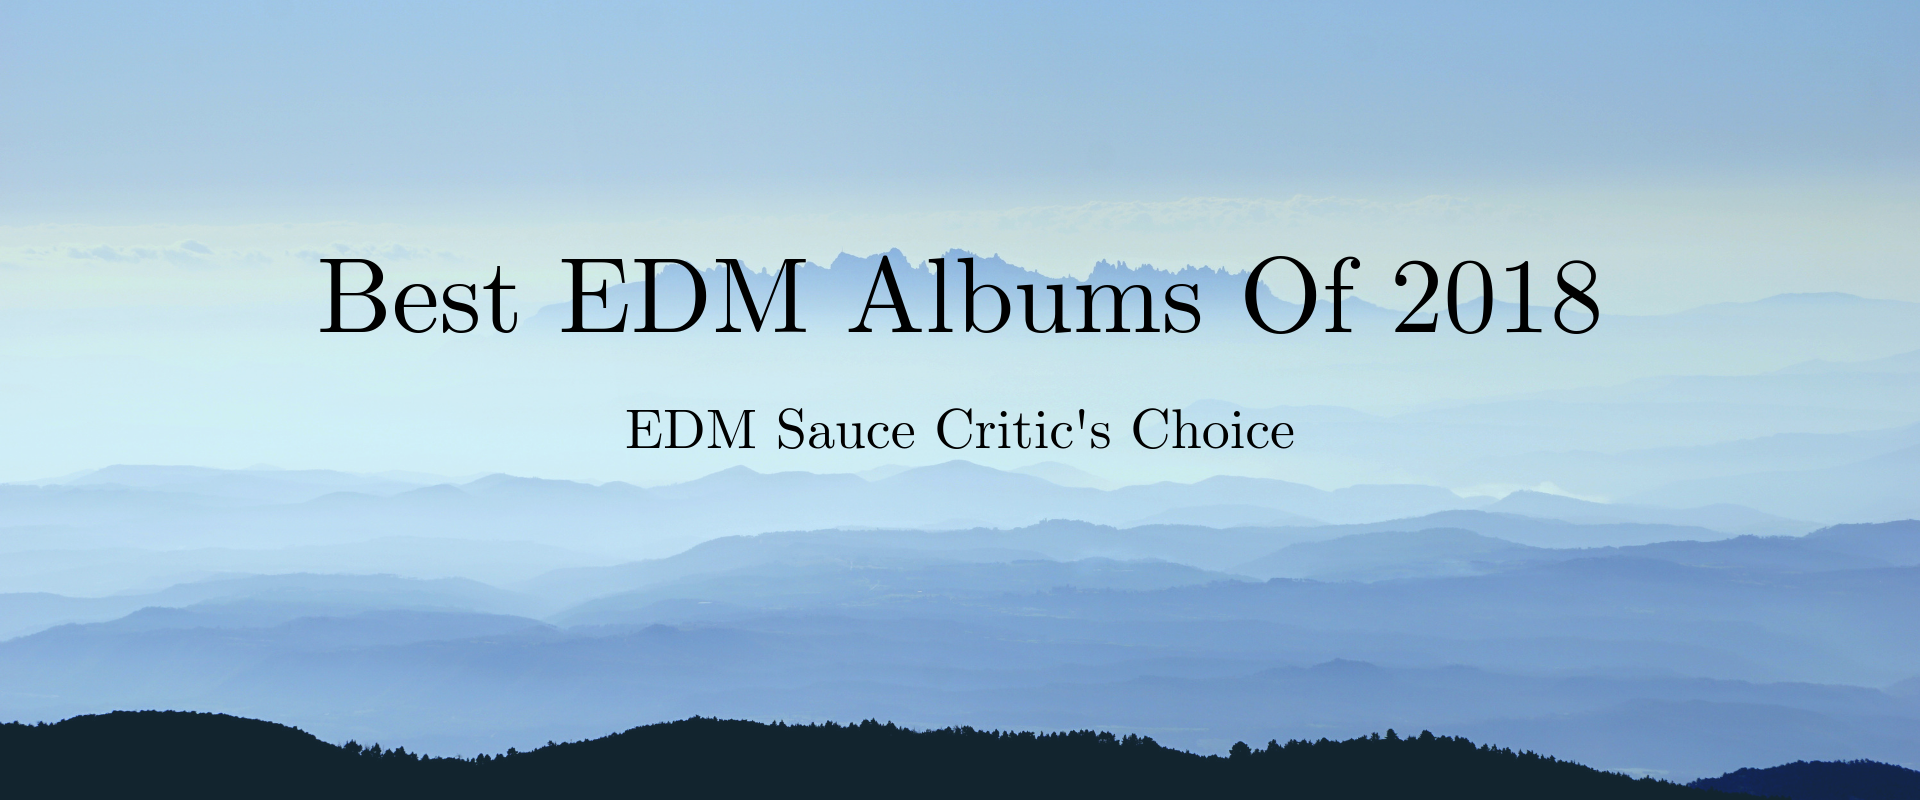 Best EDM Albums Of The Year 2018: EDM Sauce Critic's Choice | Ravers